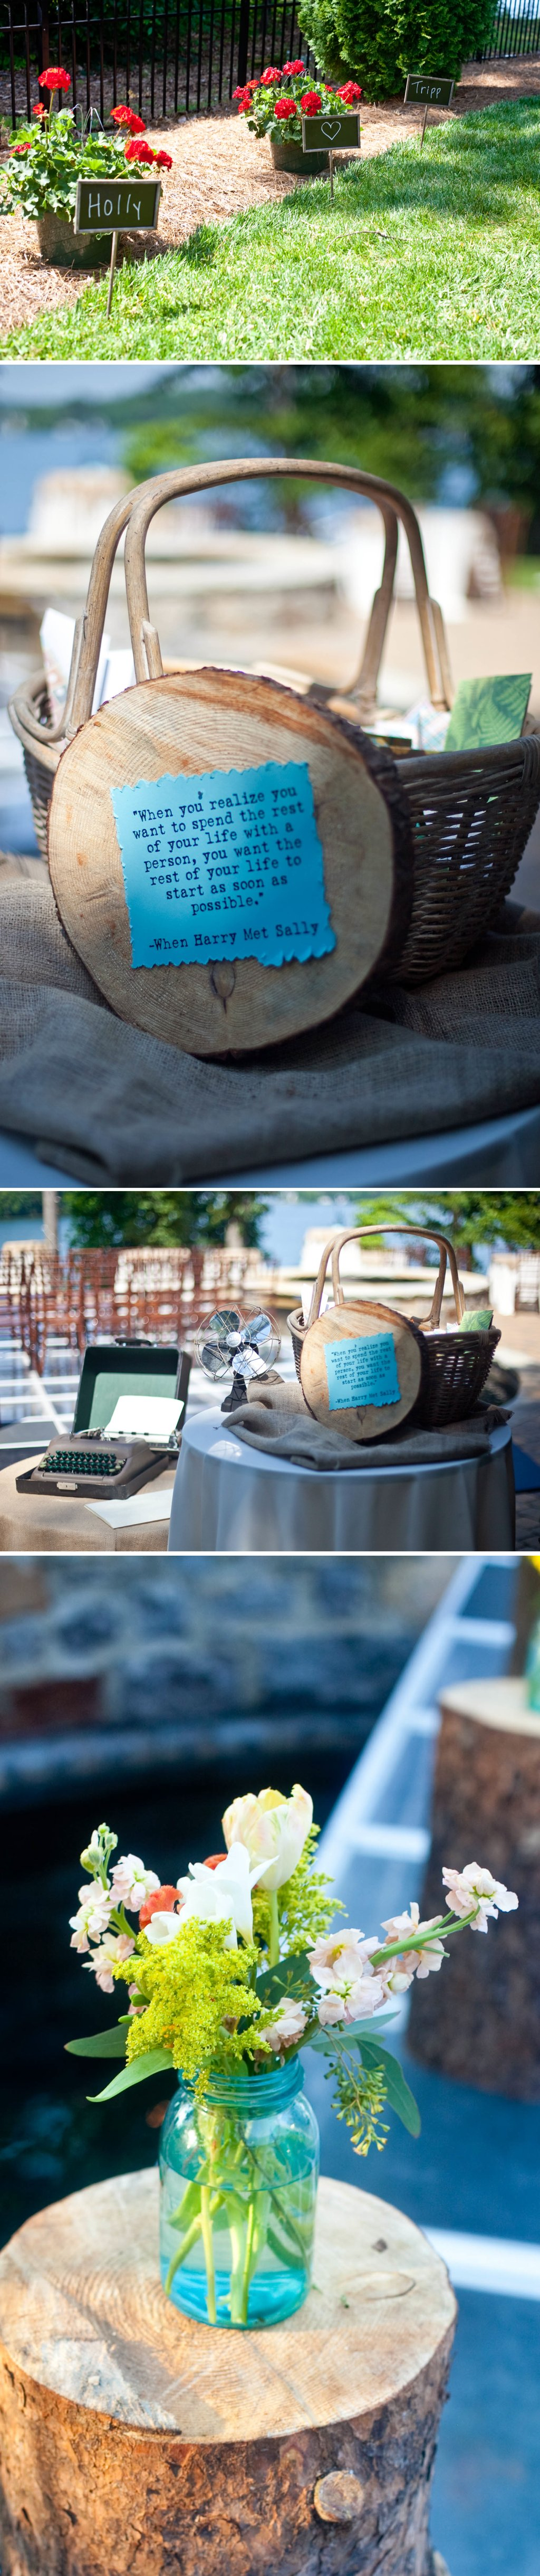 Real-wedding-turquoise-color-palette-mason-jar-reception-centerpieces.full